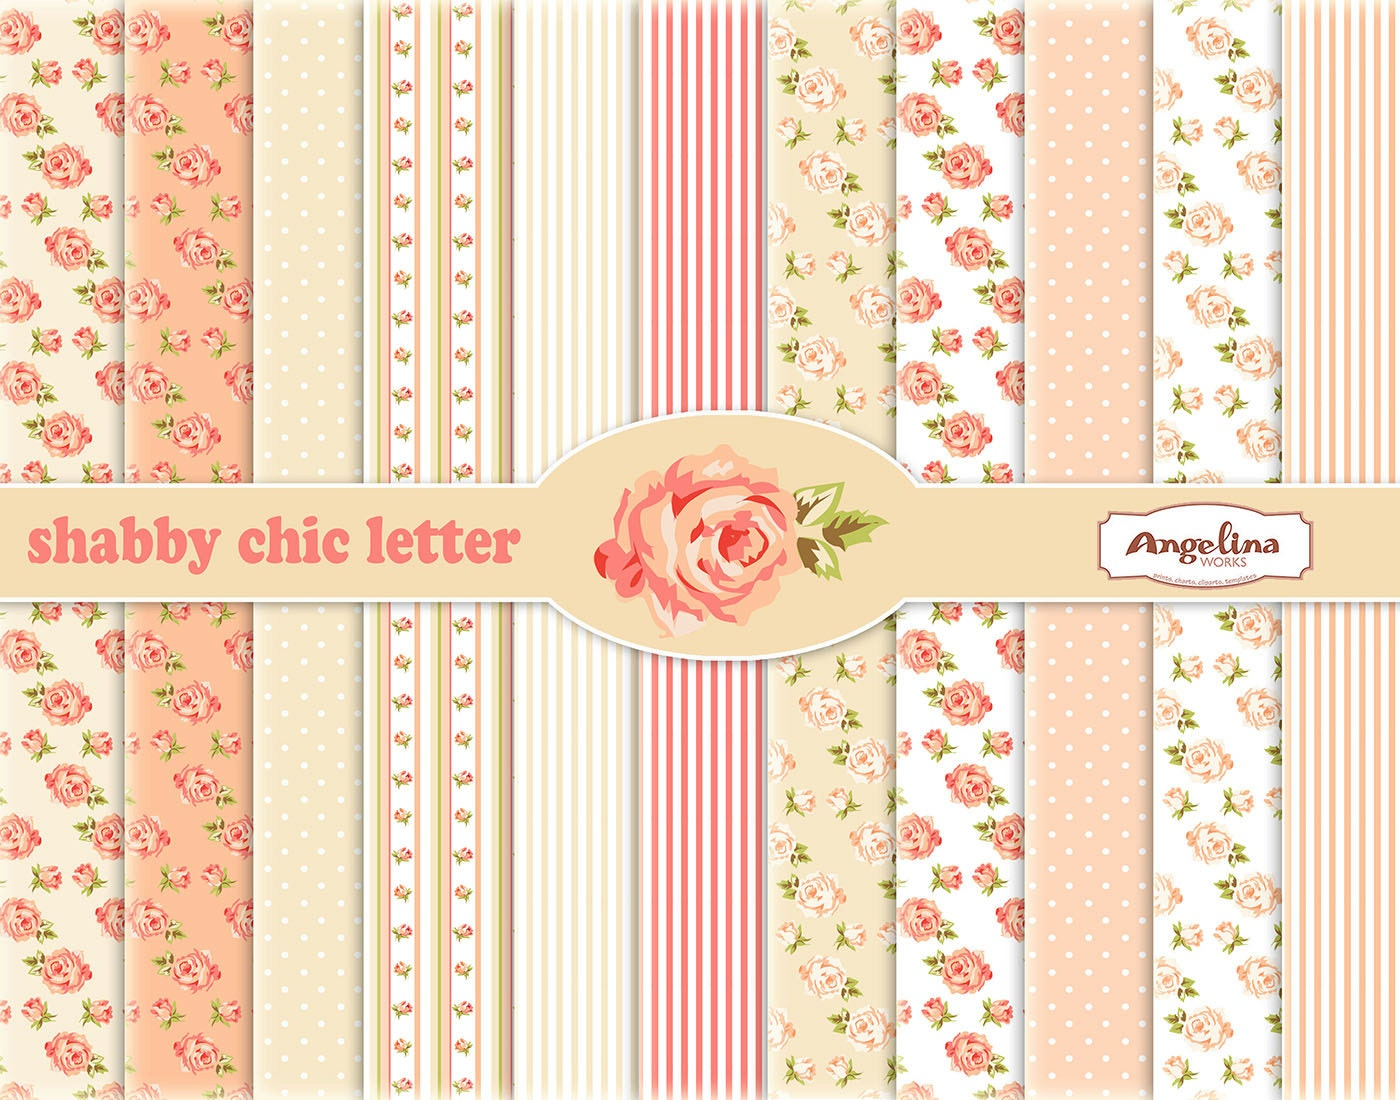 12 Shabby Chic Rose Digital Scrapbook Papers 8x11 inch for